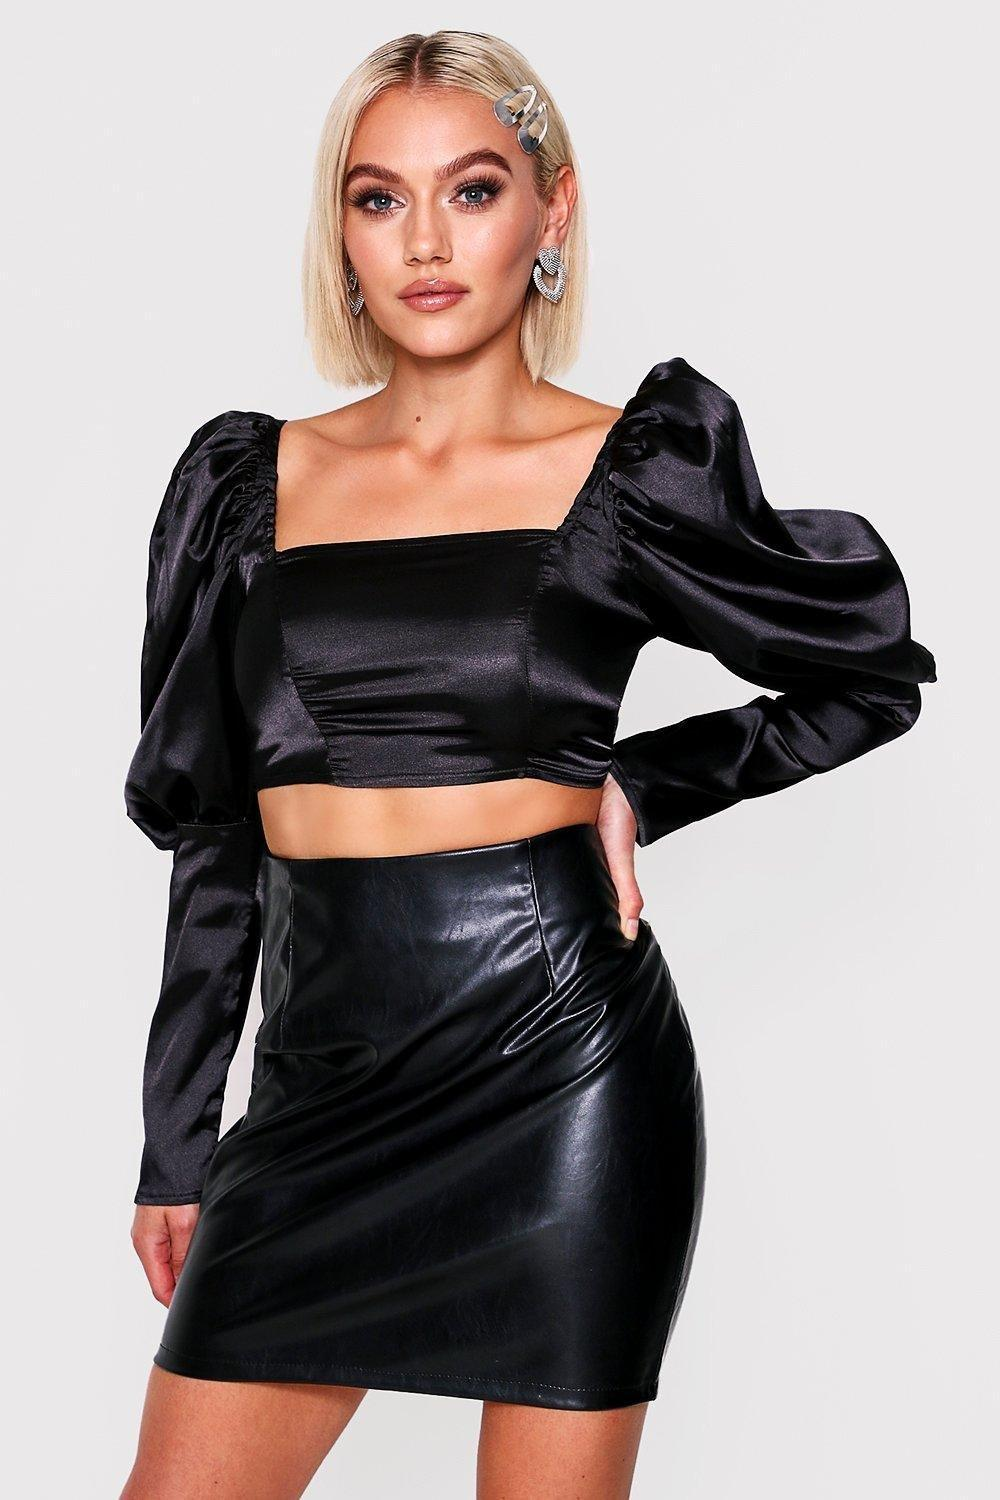 boohoo Womens Satin Puff Sleeve Crop Top - Black - 10, Black